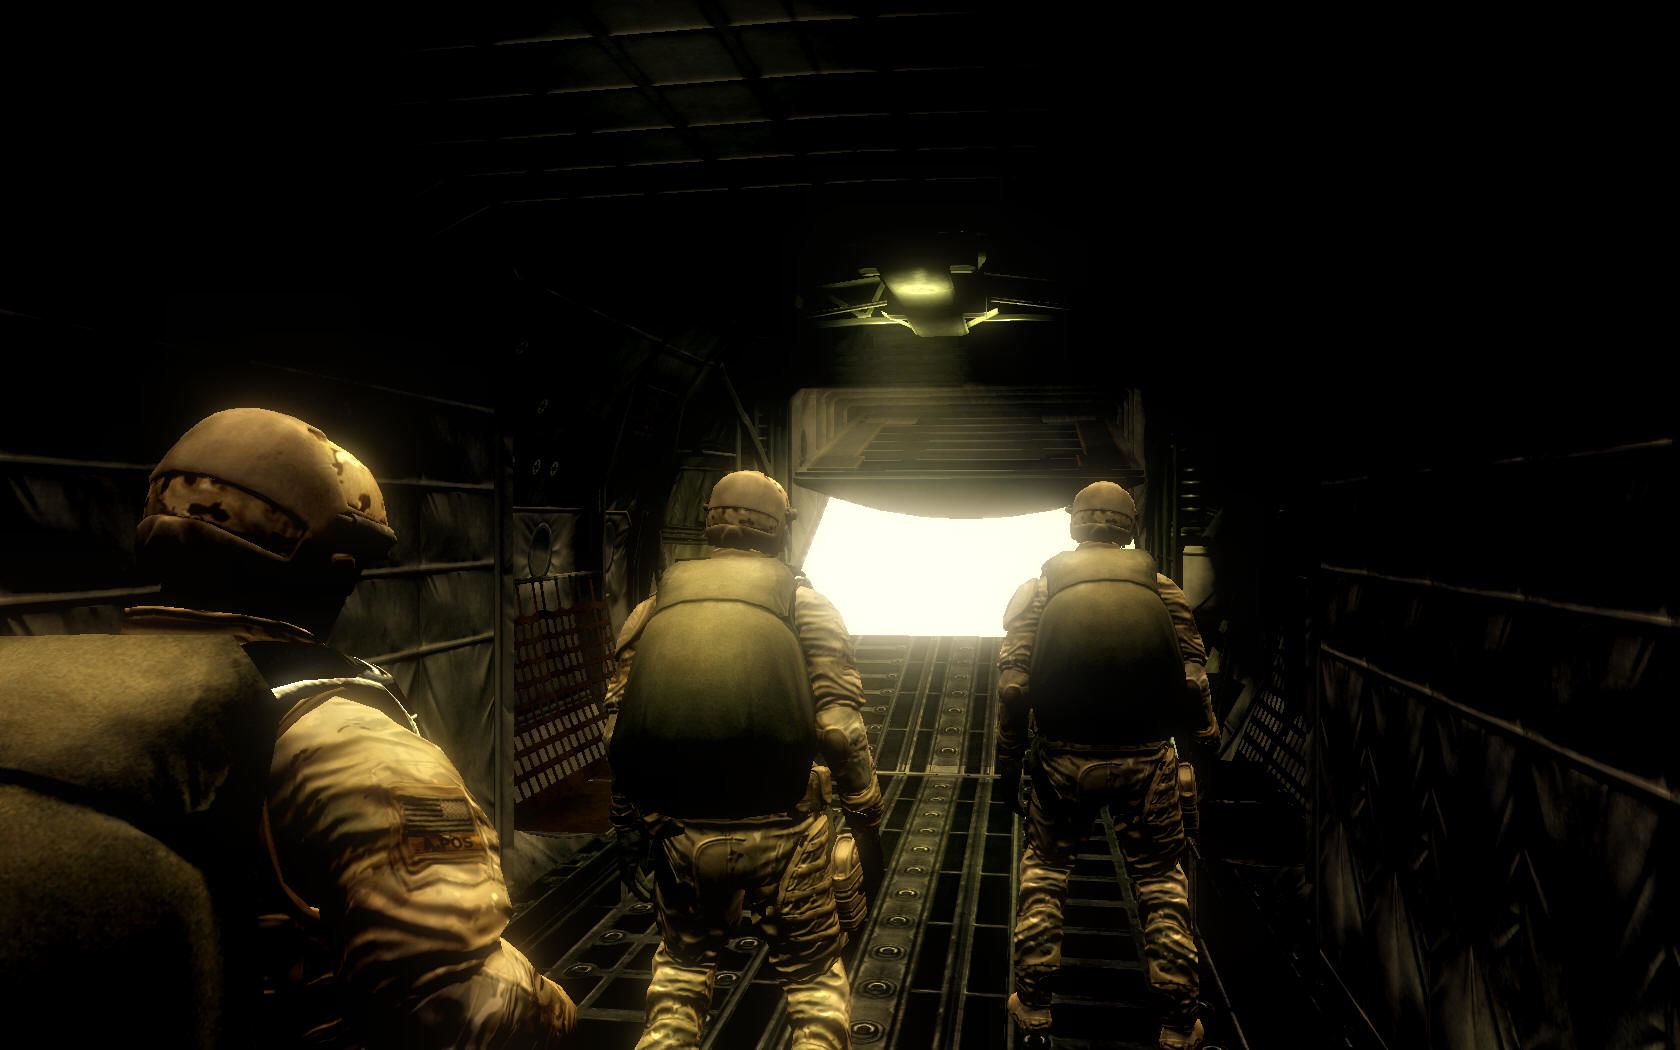 Tom Clancy's Ghost Recon: Advanced Warfighter Windows The beginning of the game. Deploying...